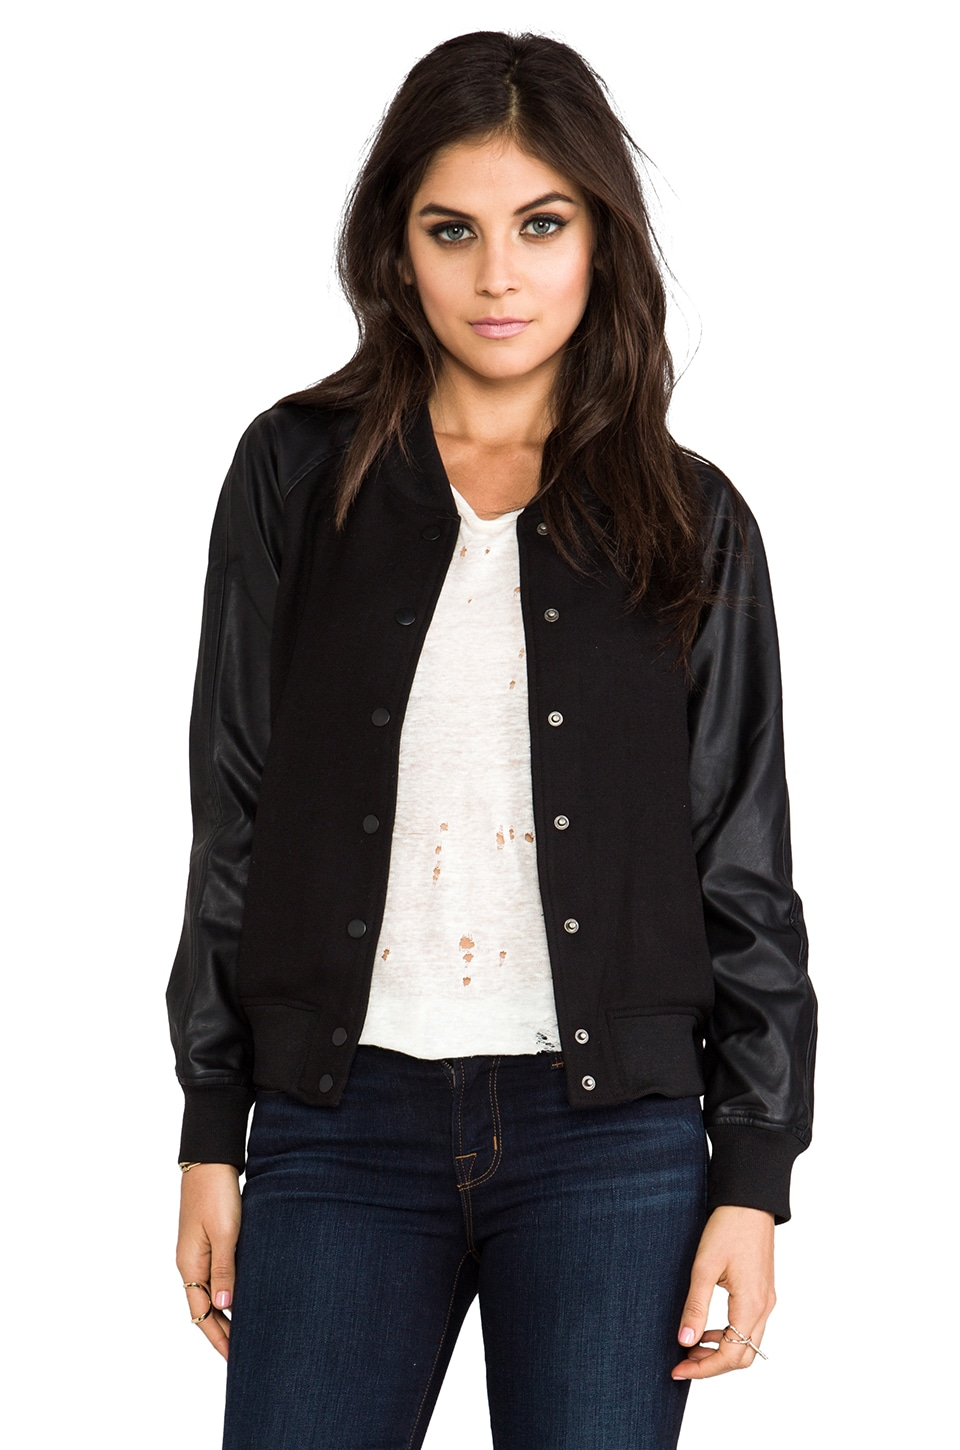 Lovers + Friends Varsity Jacket w/ Vegan Leather Sleeves in Black